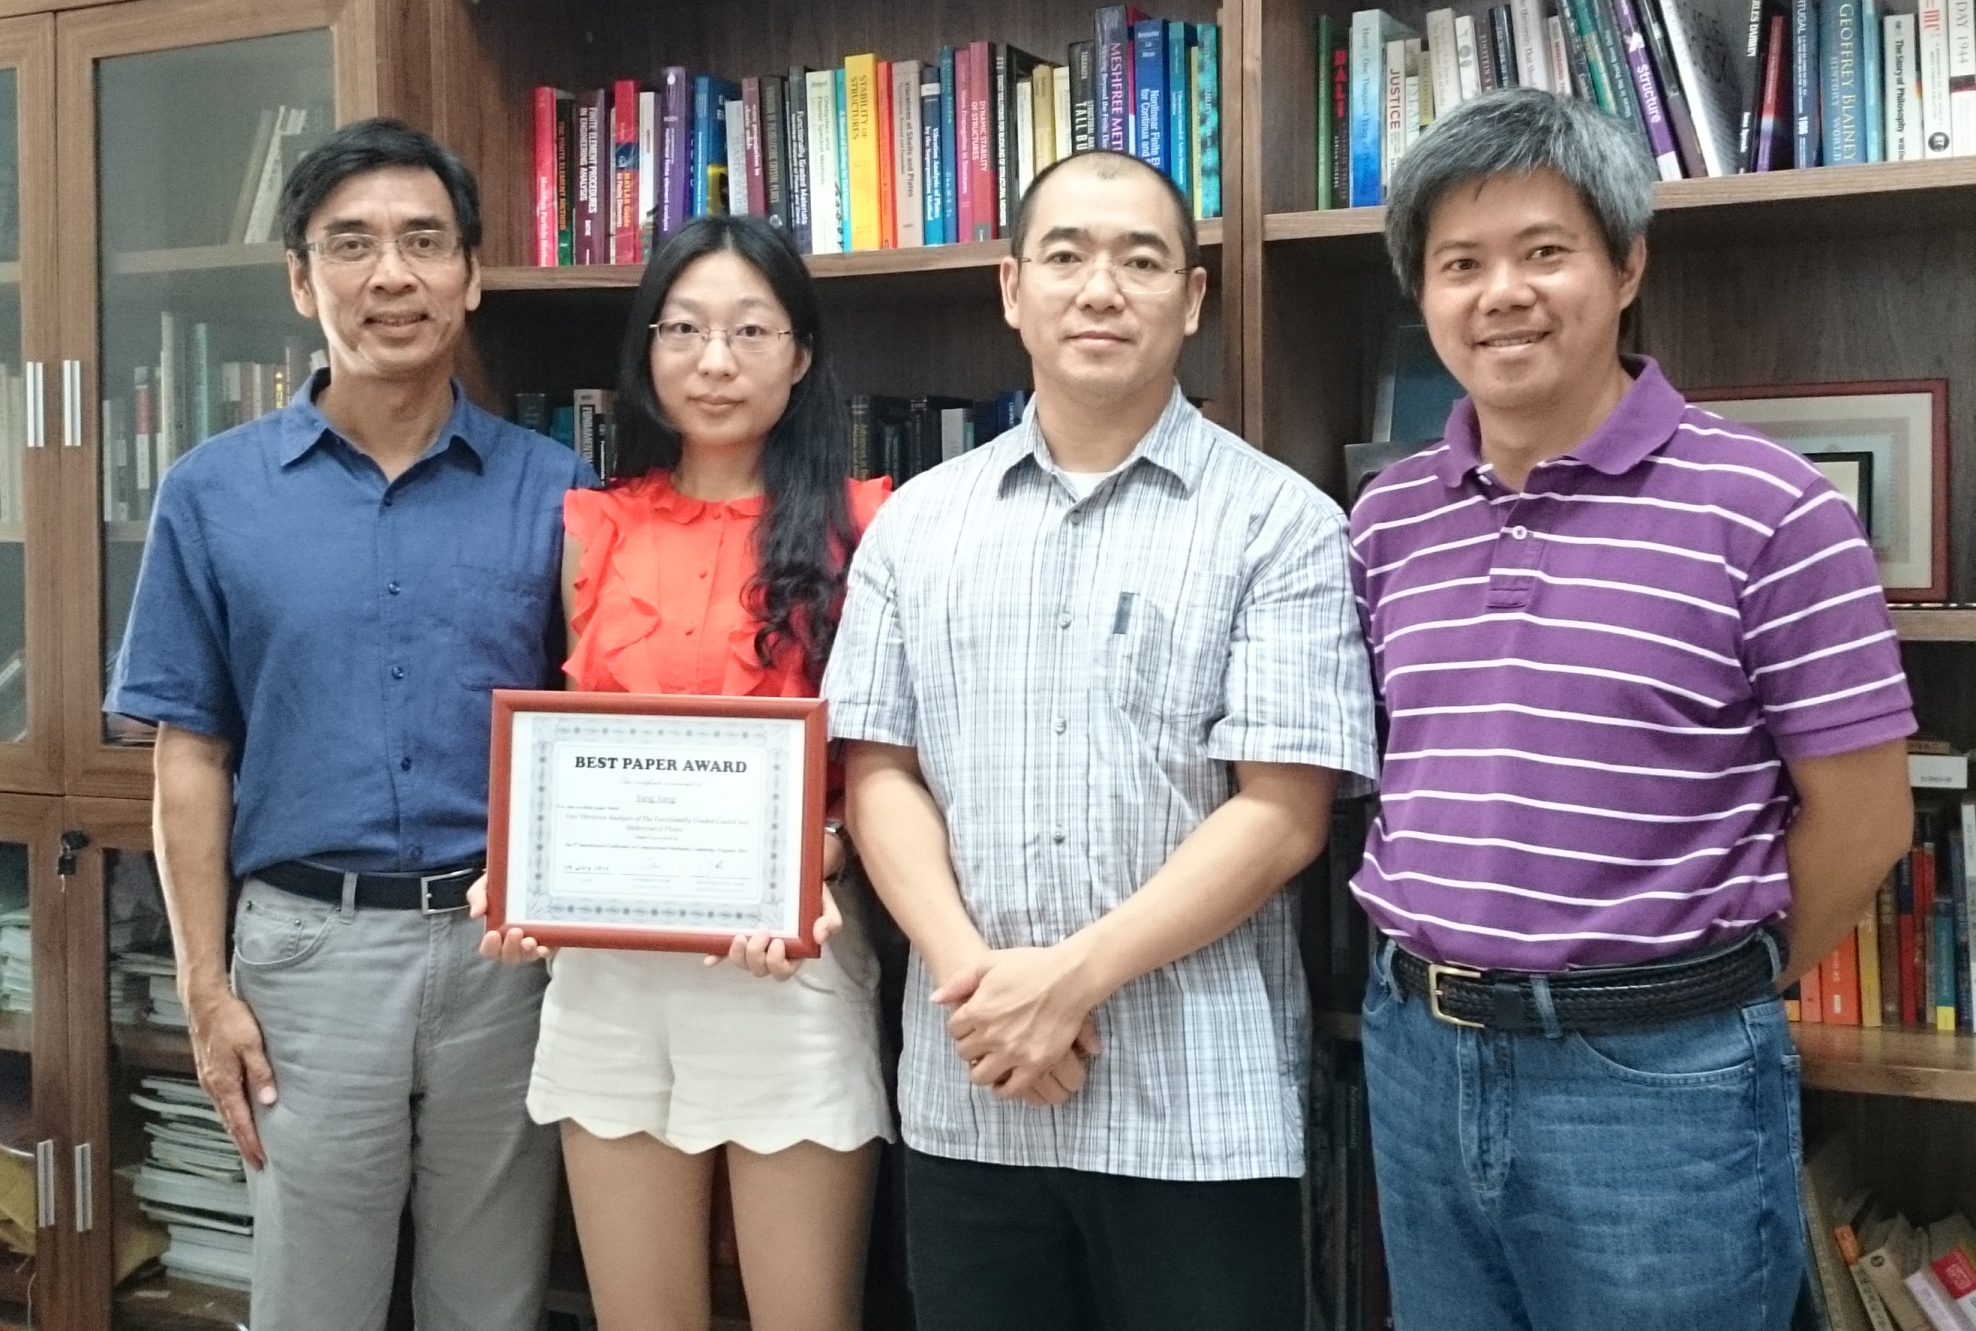 The award-winning PhD student Yang Yang (2nd from left) and her supervisors